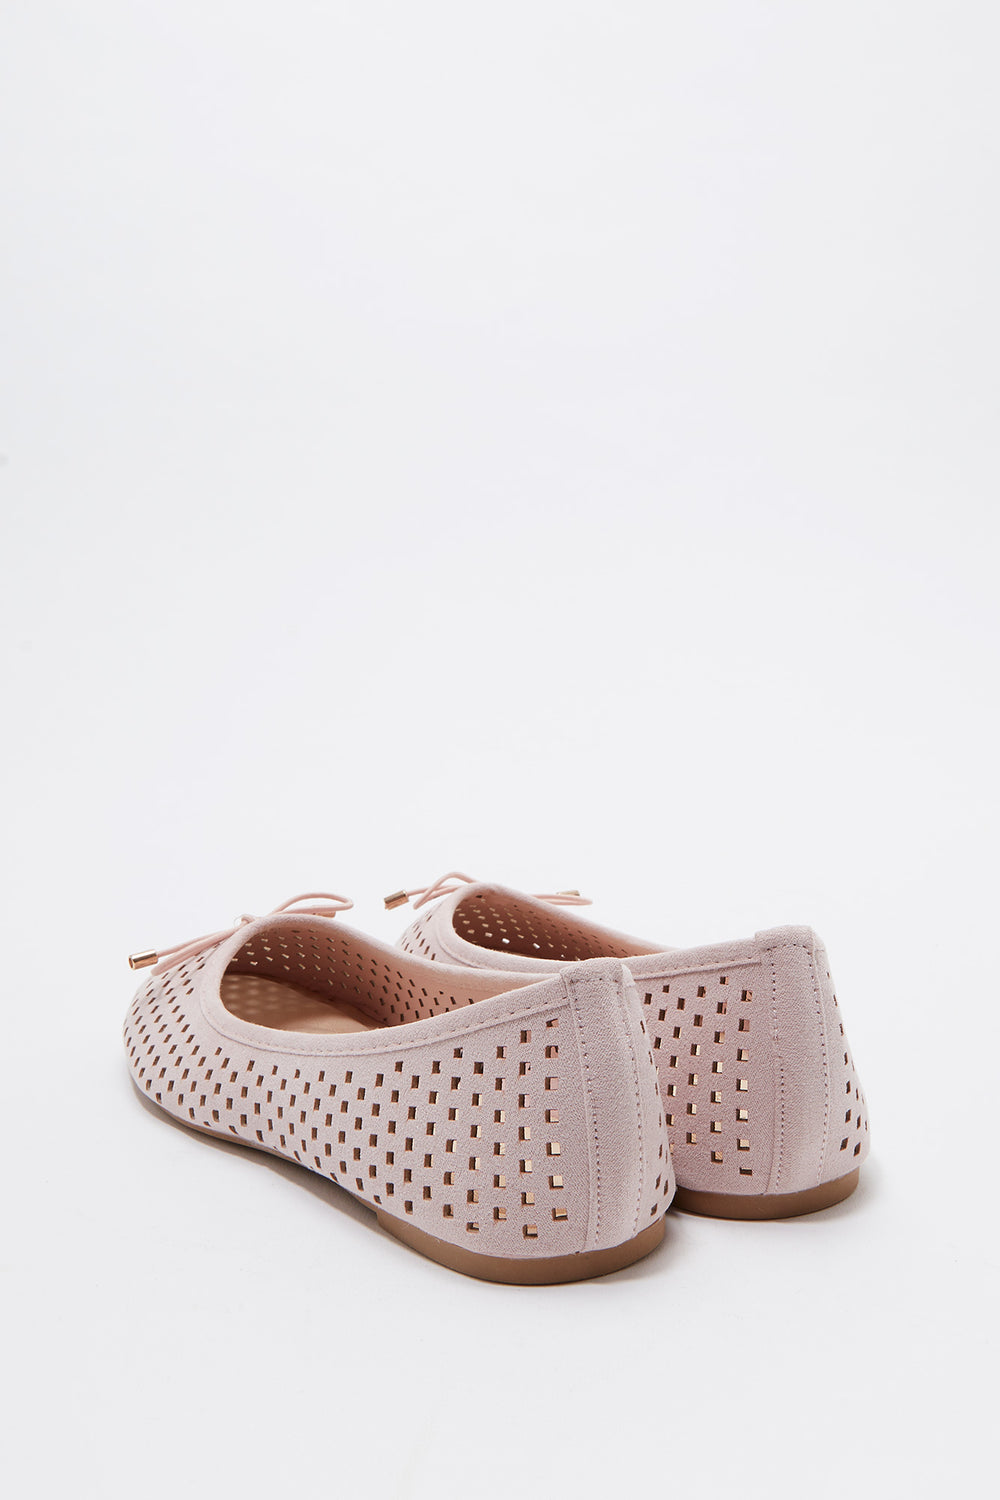 Laser Cut Out Bow Ballet Flat Light Pink